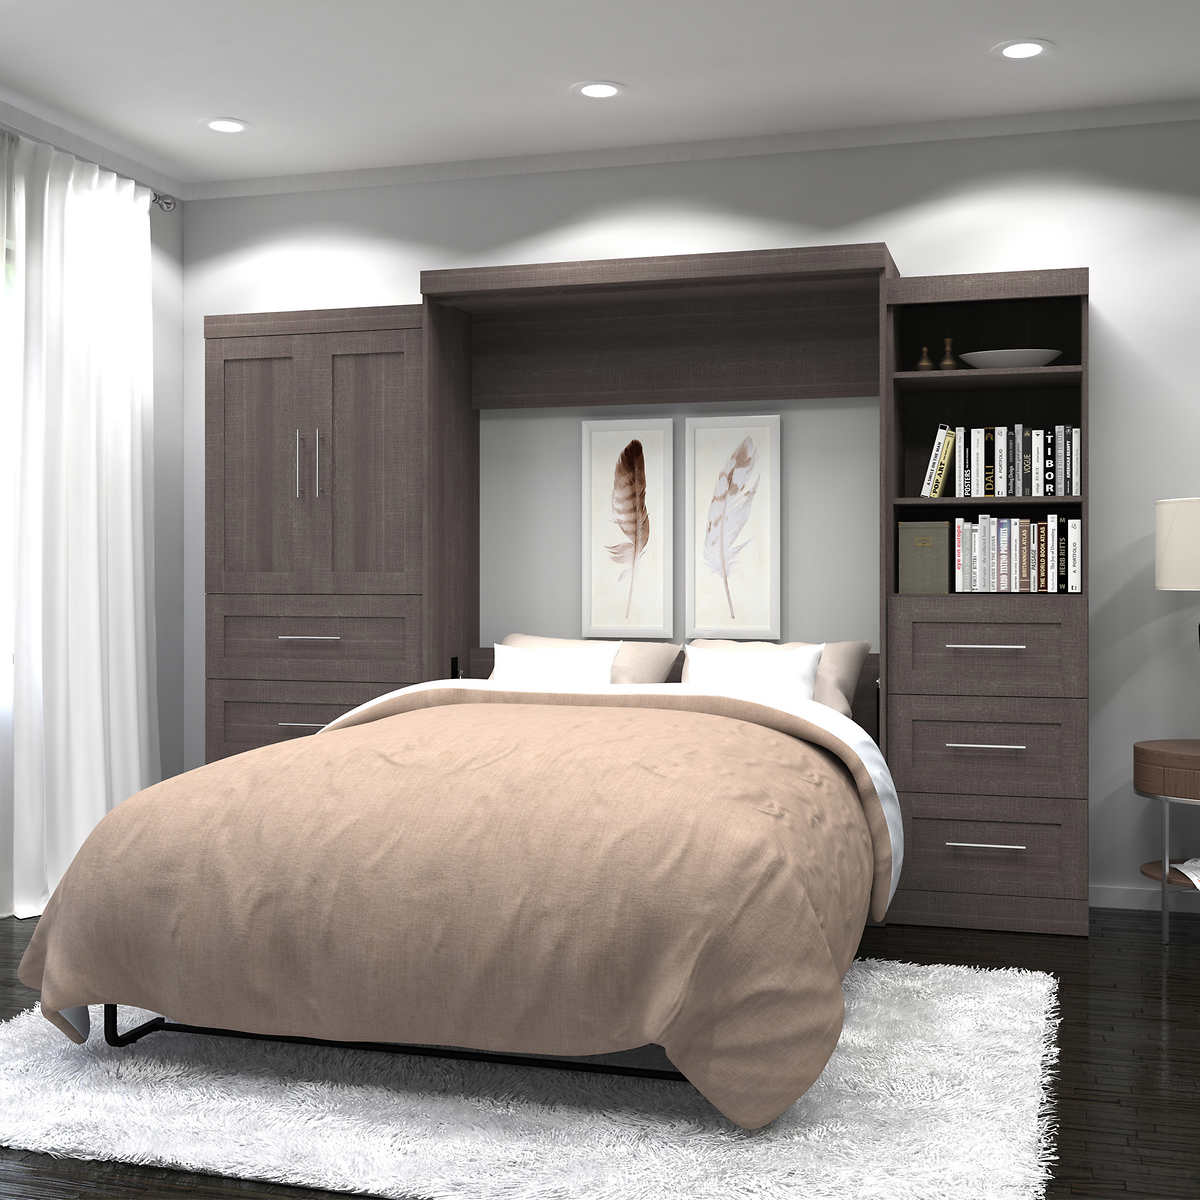 Lumina queen wall bed with desk and storage unit member only item amipublicfo Gallery